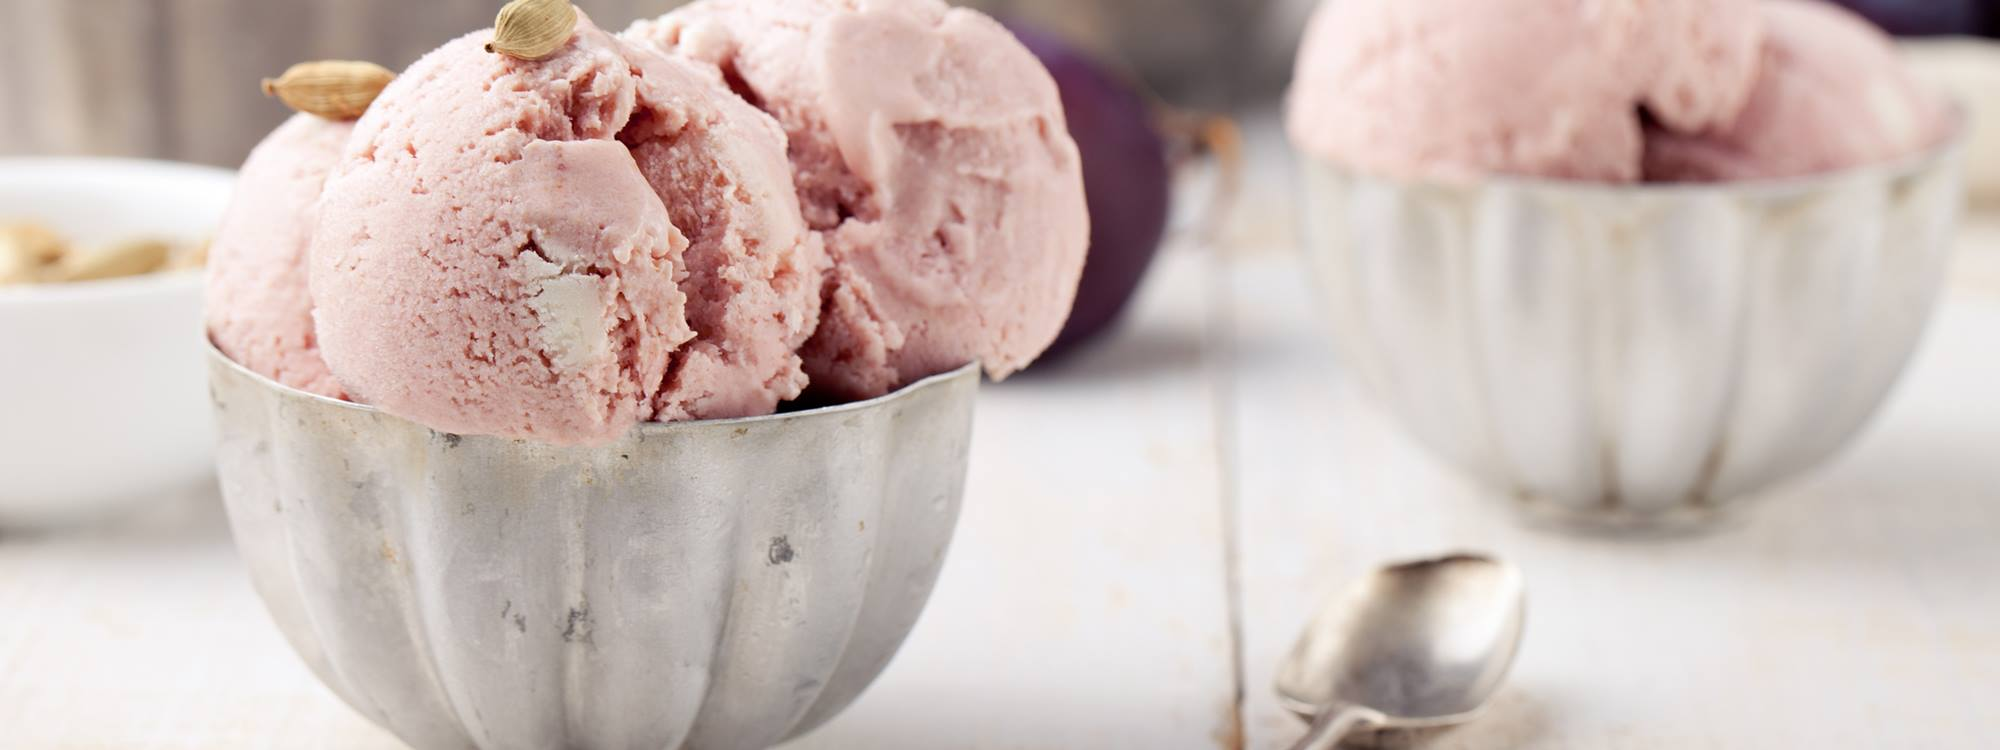 The use of Nutrilac milk proteins in ice cream keep costs under control